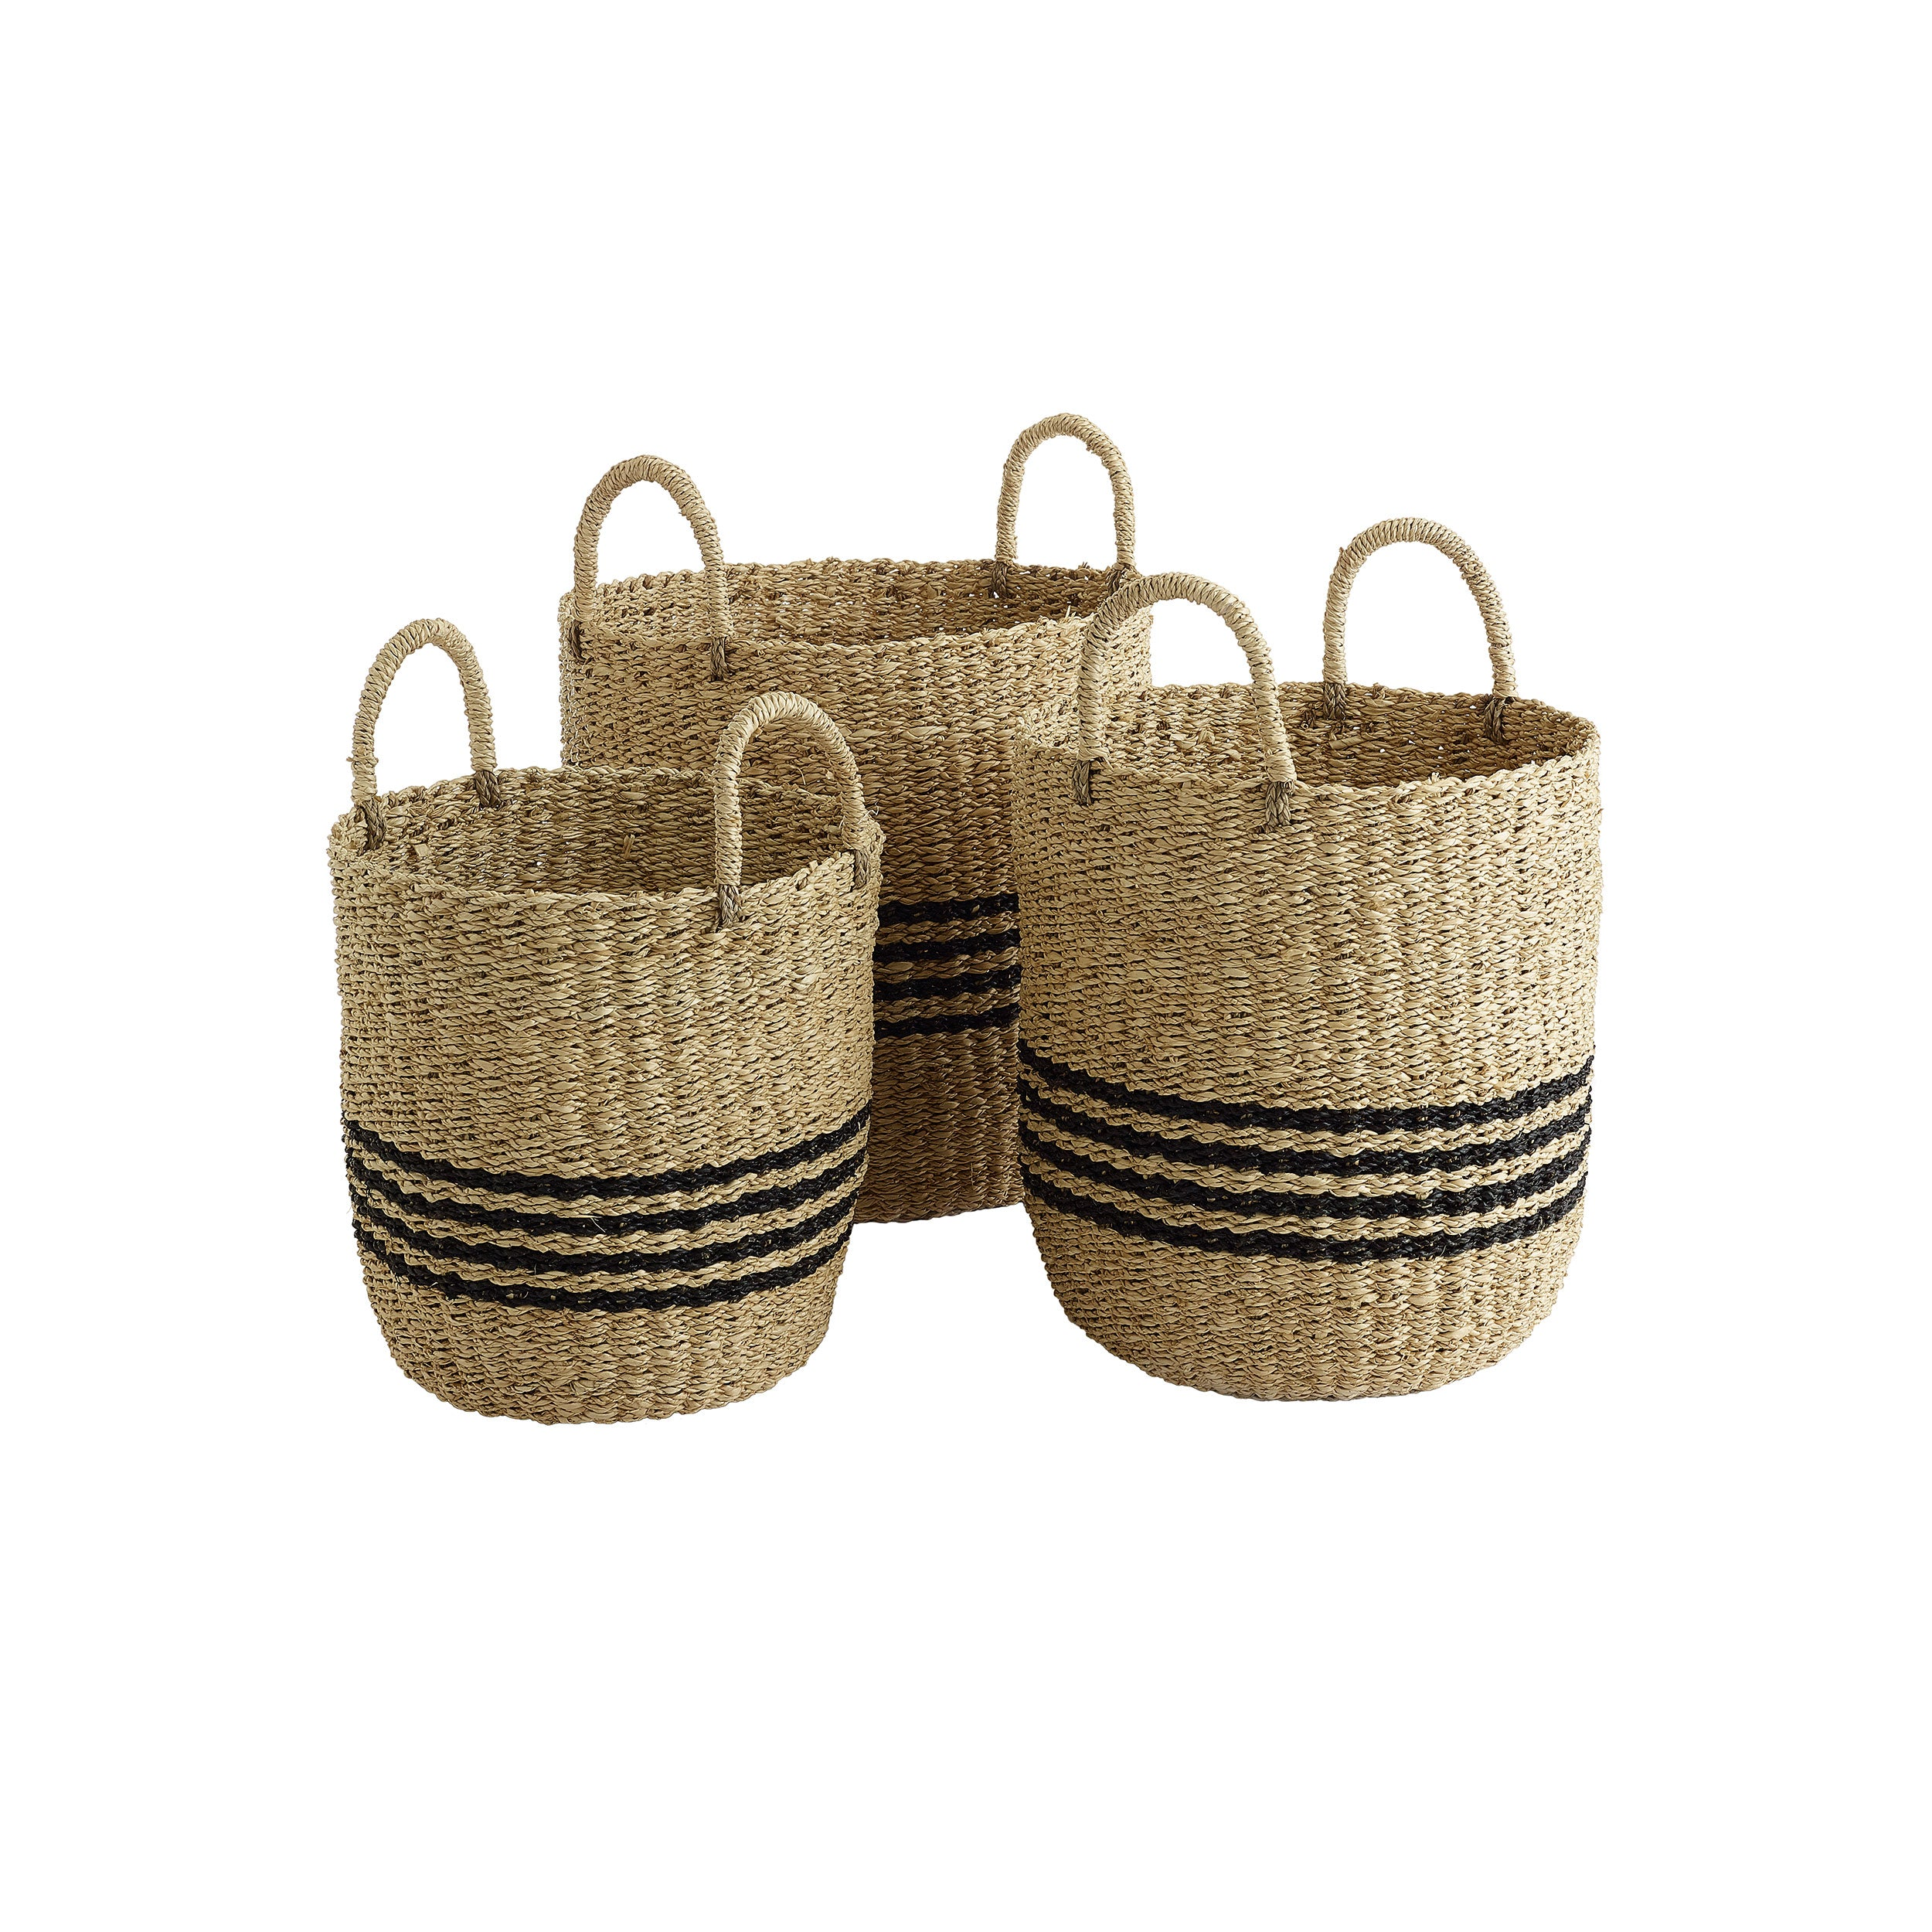 Scarborough Nest Baskets set of 3